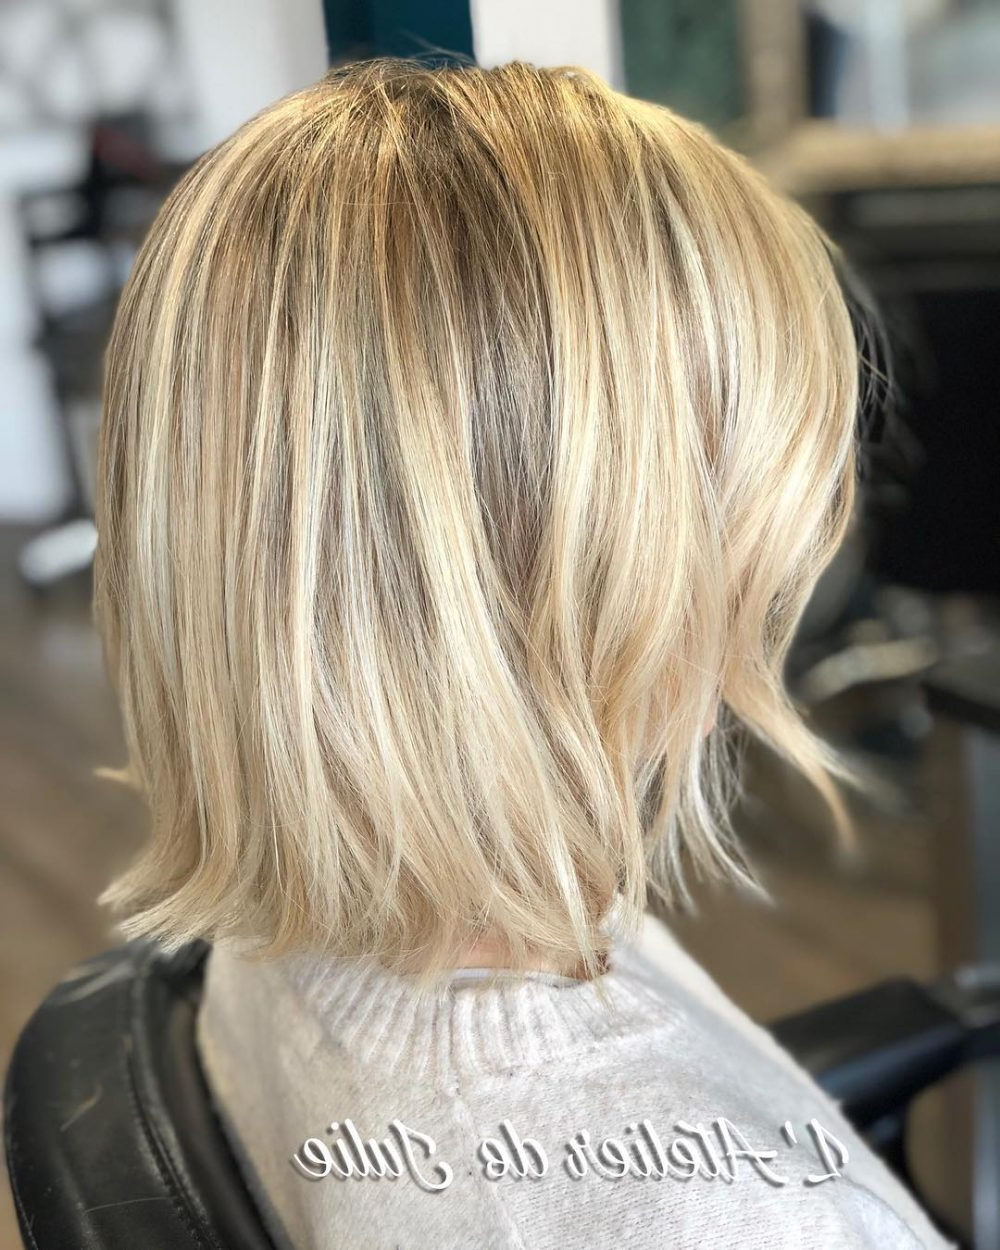 34 Perfect Short Haircuts And Hairstyles For Thin Hair (2018) Inside Cute Short Hairstyles For Fine Hair (View 4 of 25)